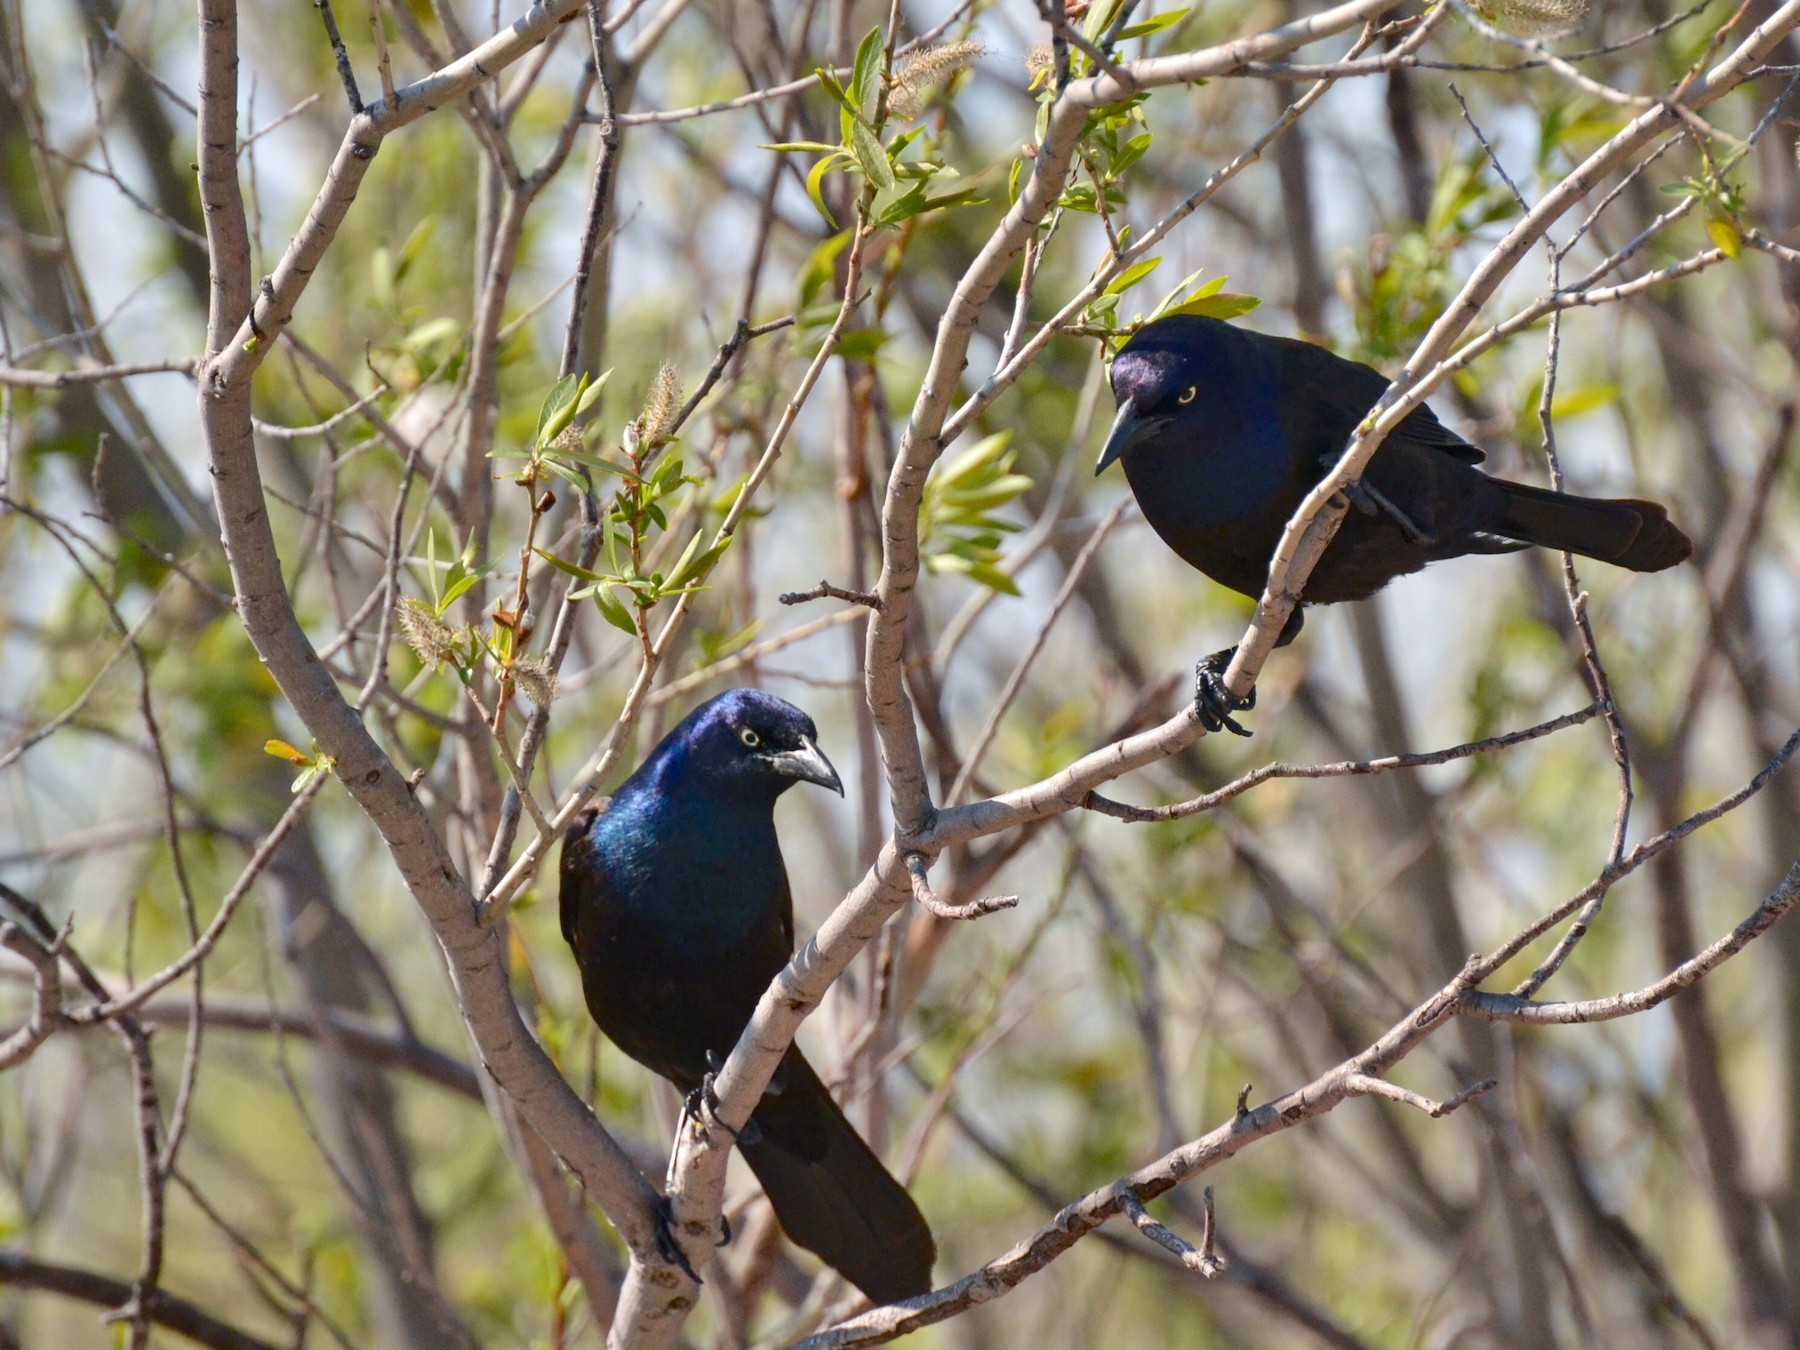 Common Grackle - Epi Shemming